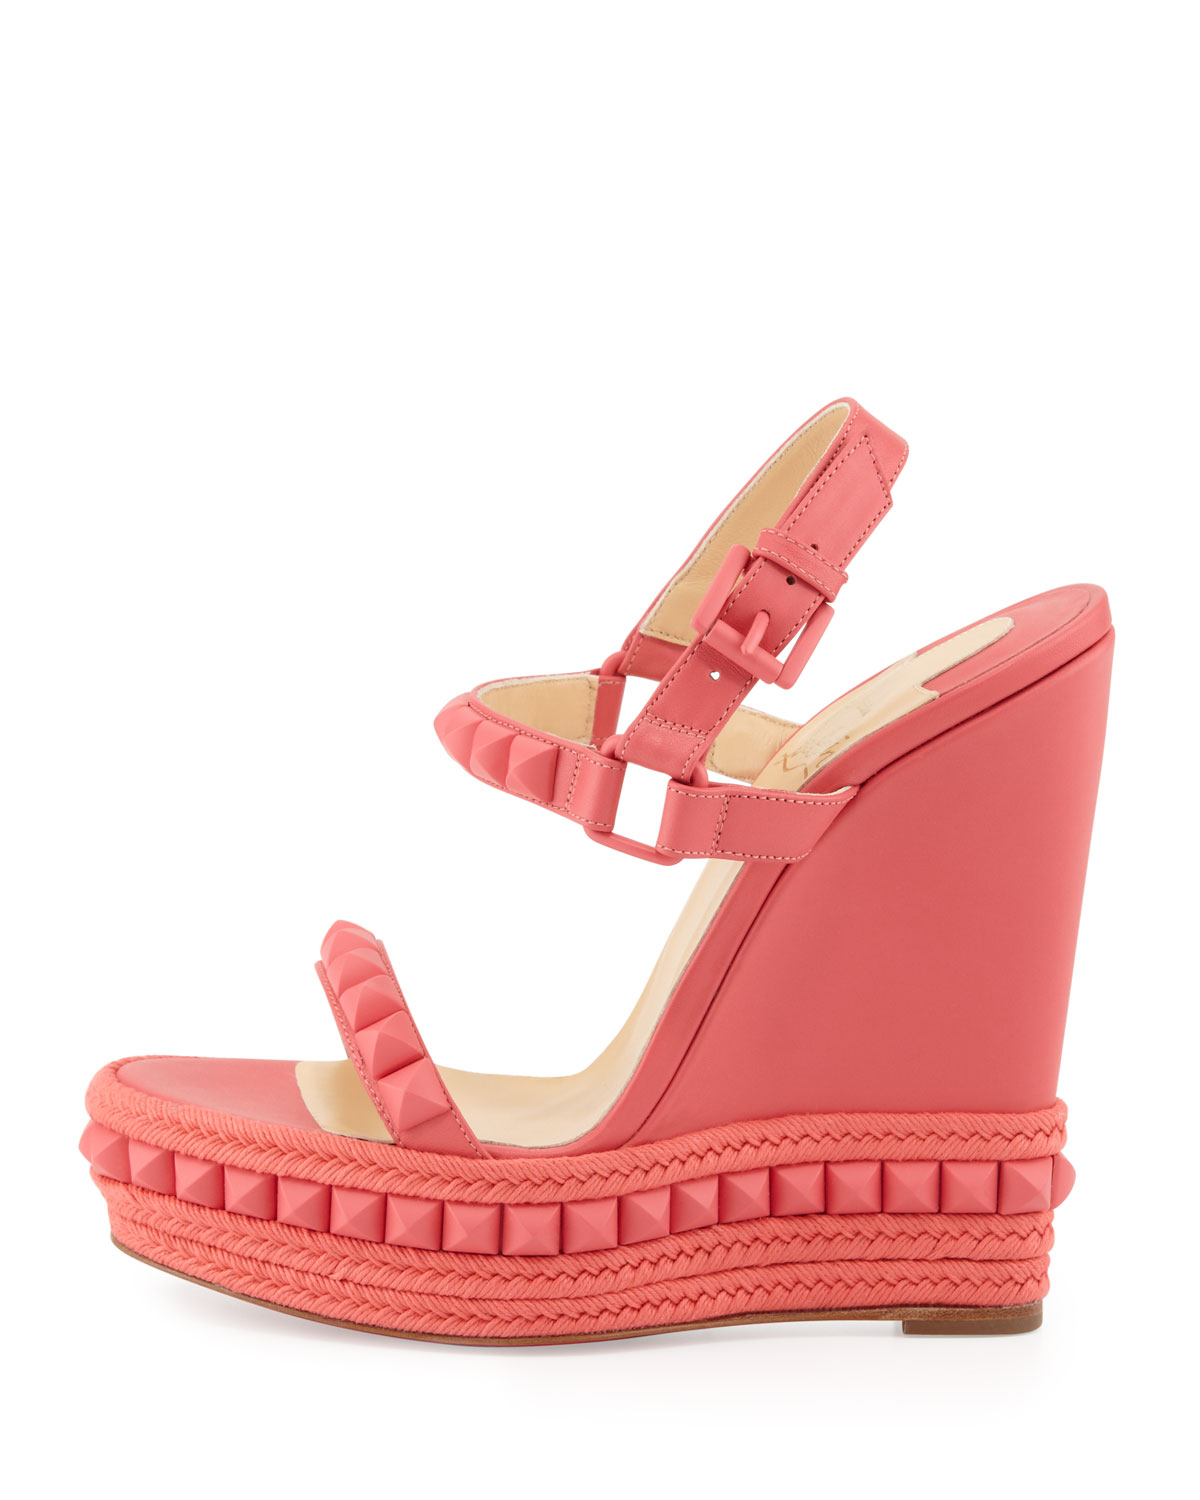 Christian Louboutin Cataclou Studded Wedge Sandal Pink In